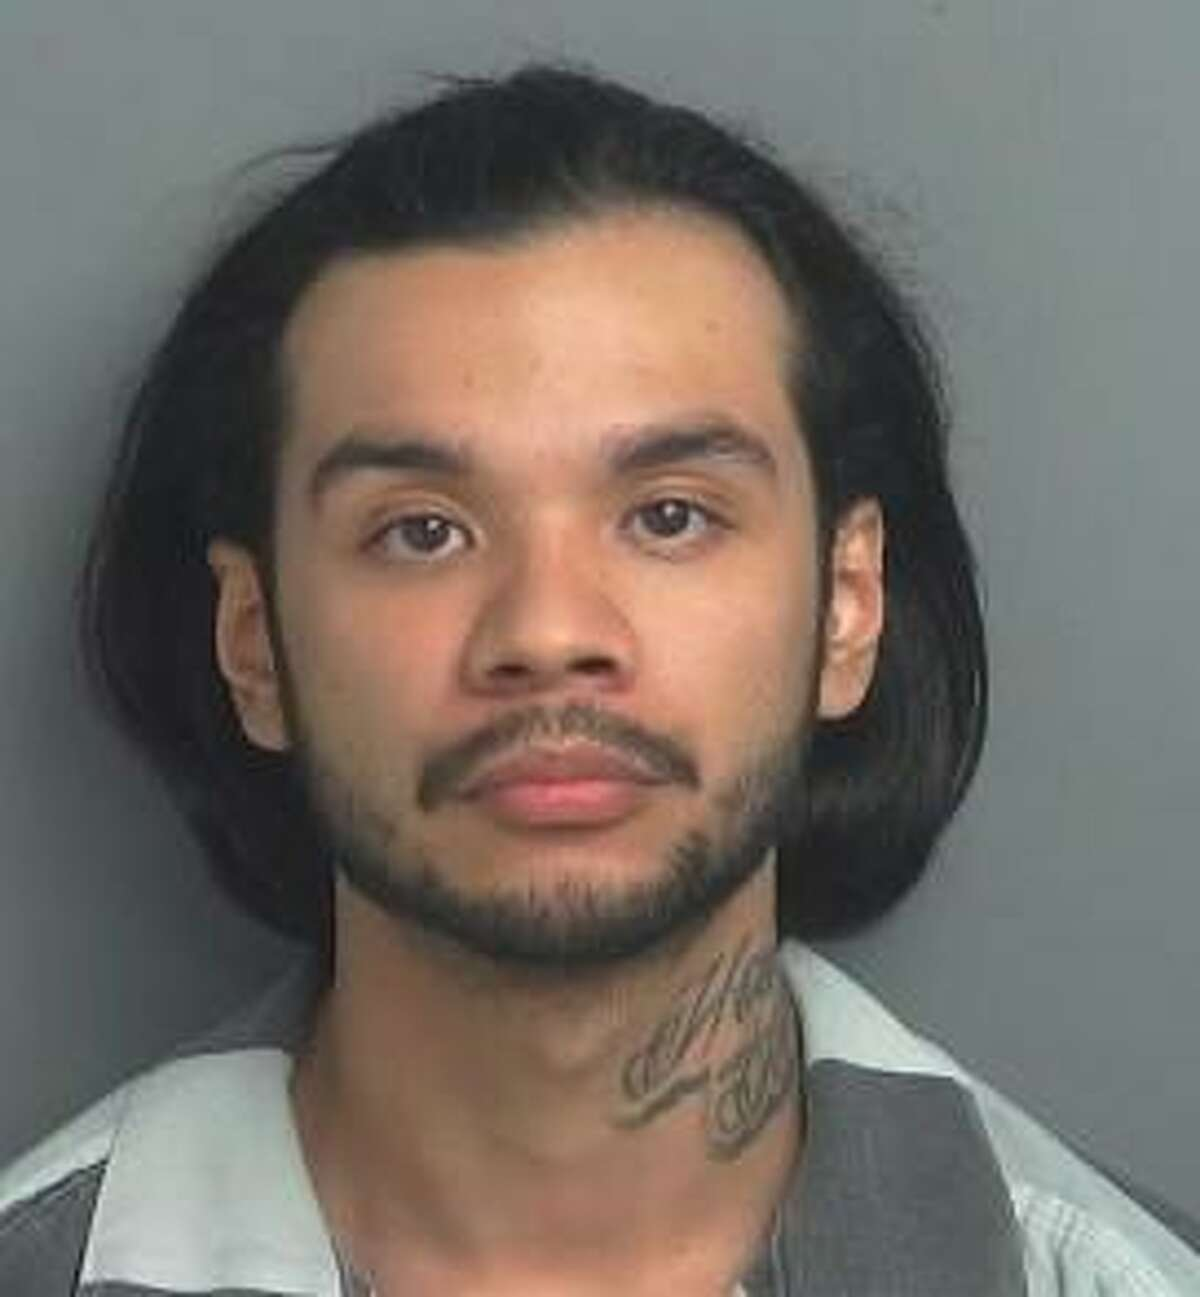 Richard Alex Tamez, 26, of Houston, was arrested Nov. 27 for allegedly soliciting a minor online.